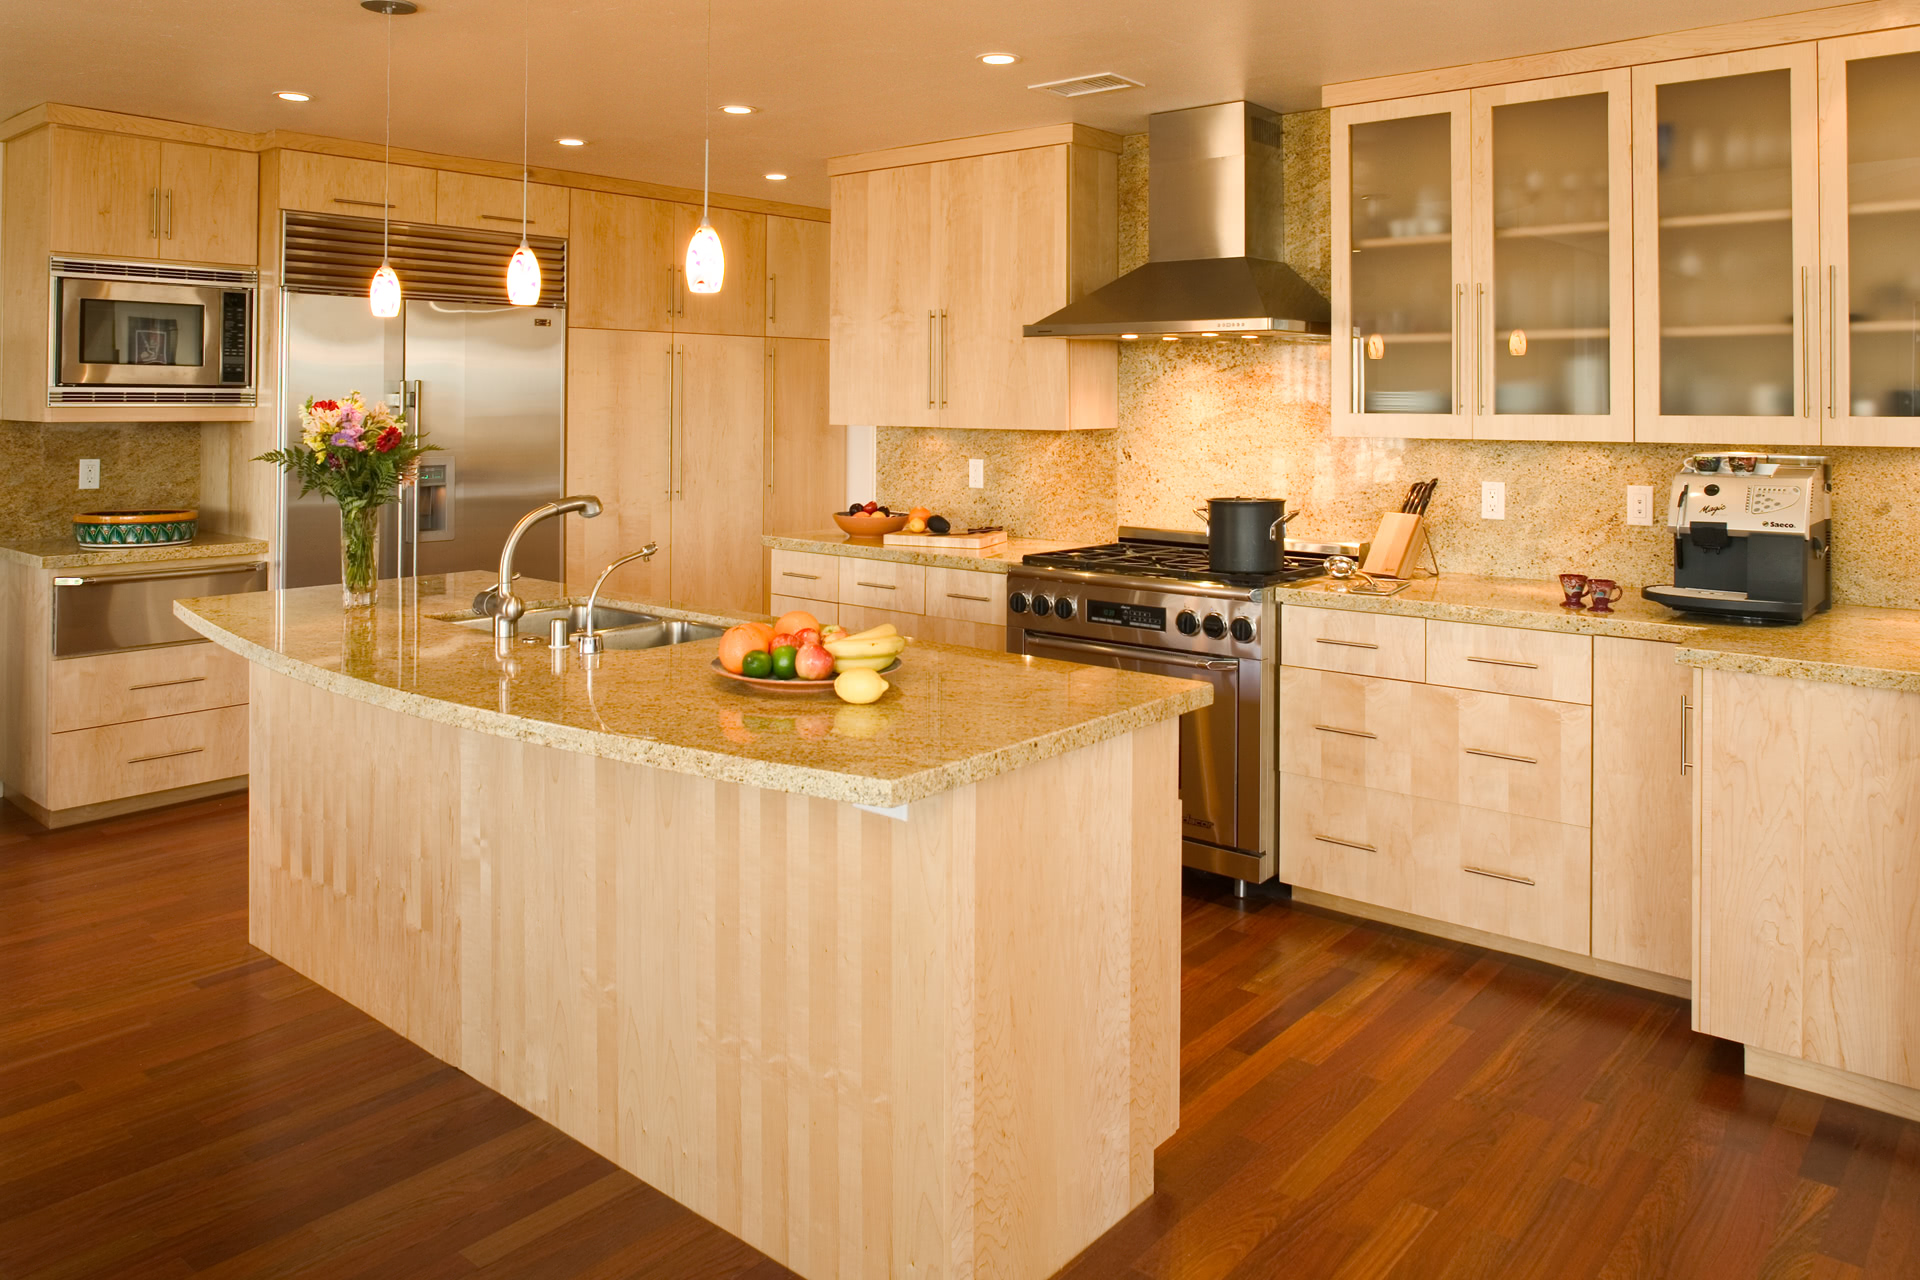 Inlay Kitchen Cabinets ~ Custom cabinets in san diego kitchens bathroom vanities